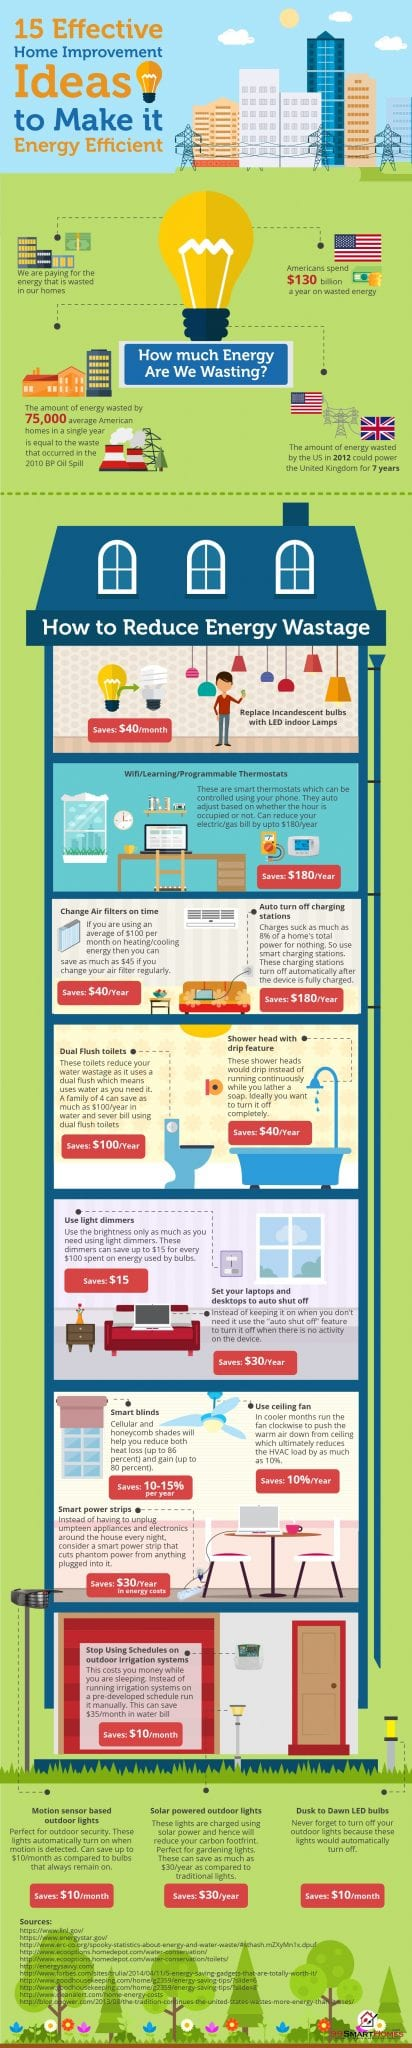 15 Effective ways to make your home energy efficient